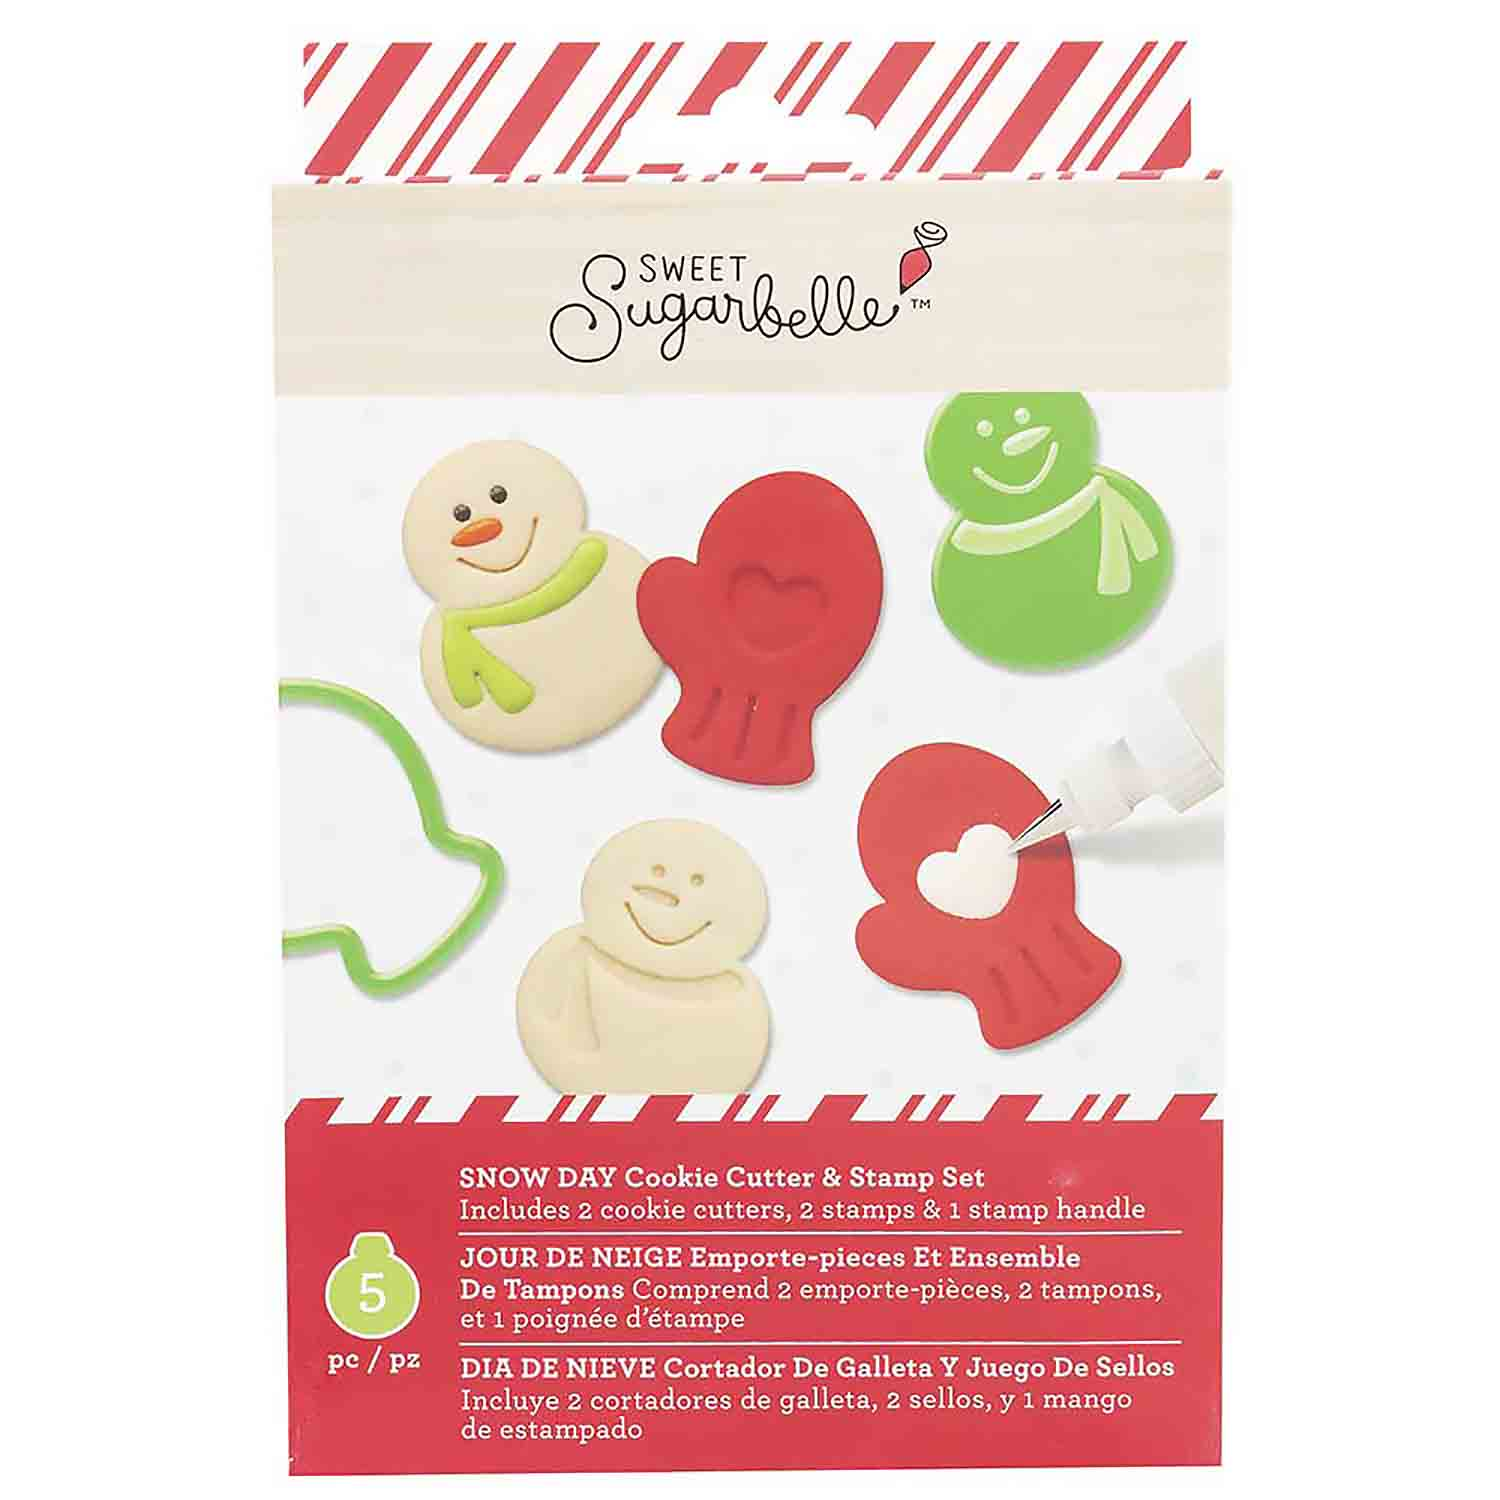 Snow Day Cookie Cutter and Stamp Set by Sweet Sugarbelle